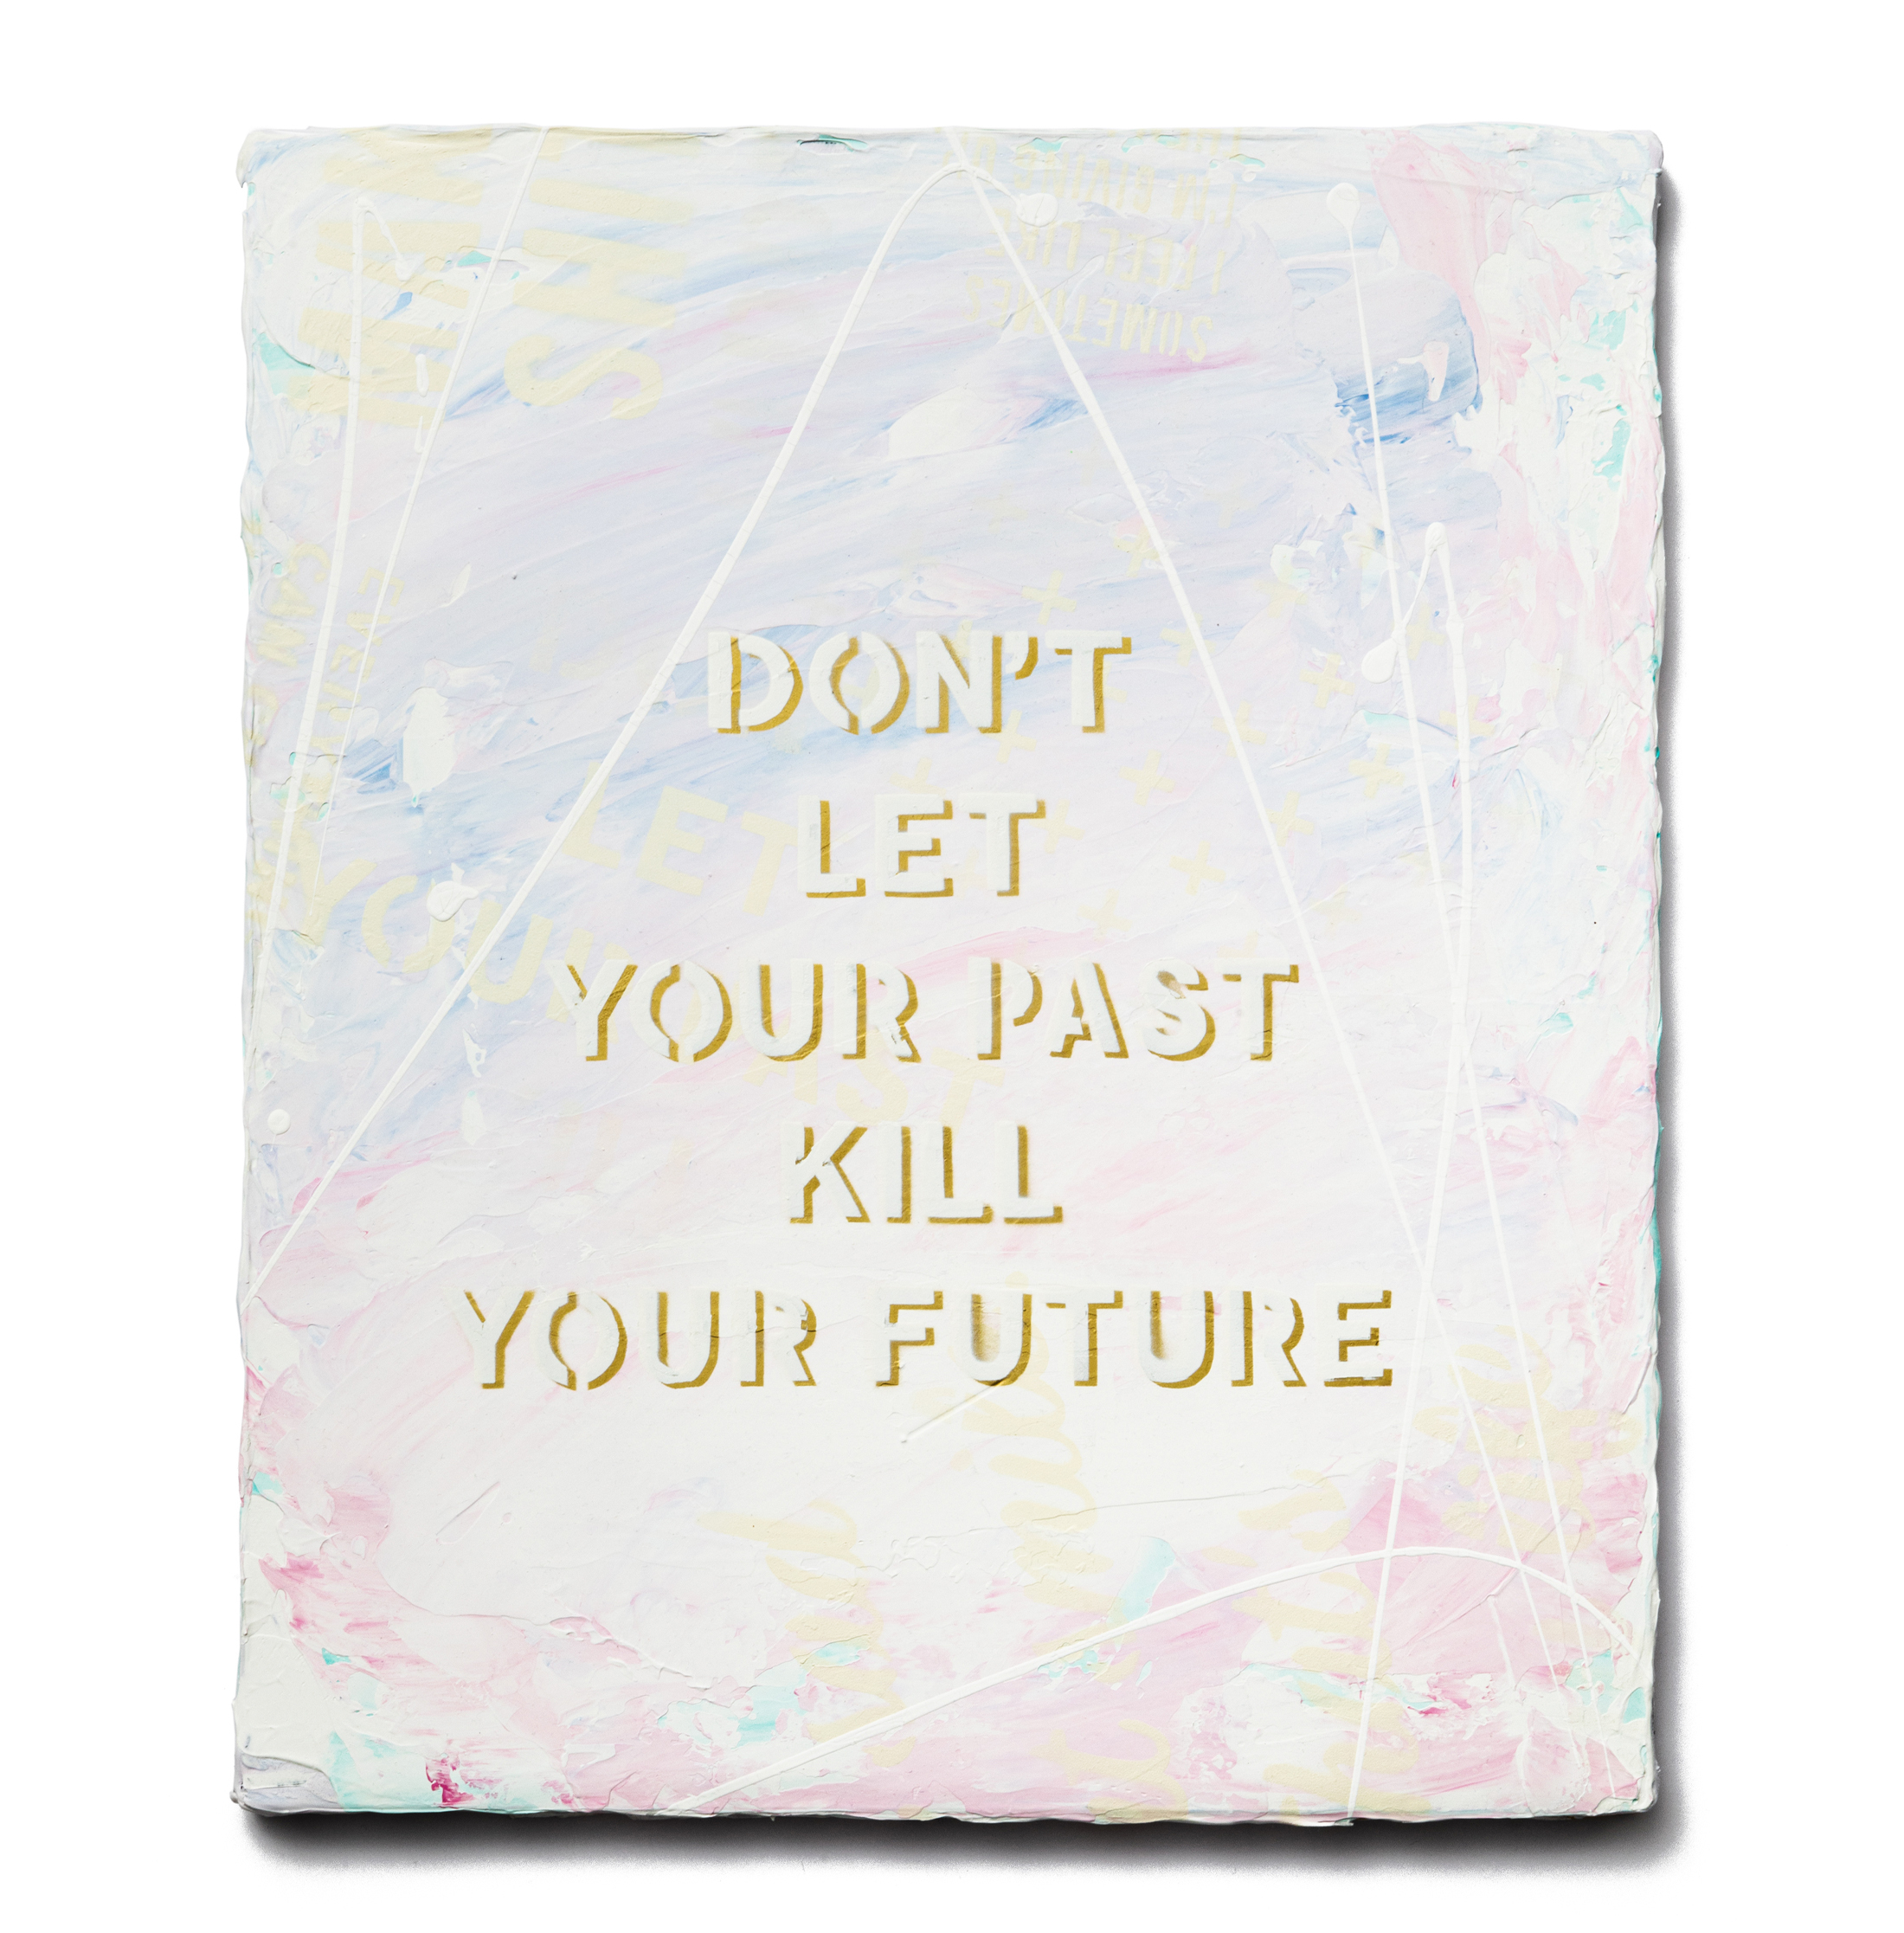 Abstract Painting: DON'T LET YOUR PAST KILL YOUR FUTURE